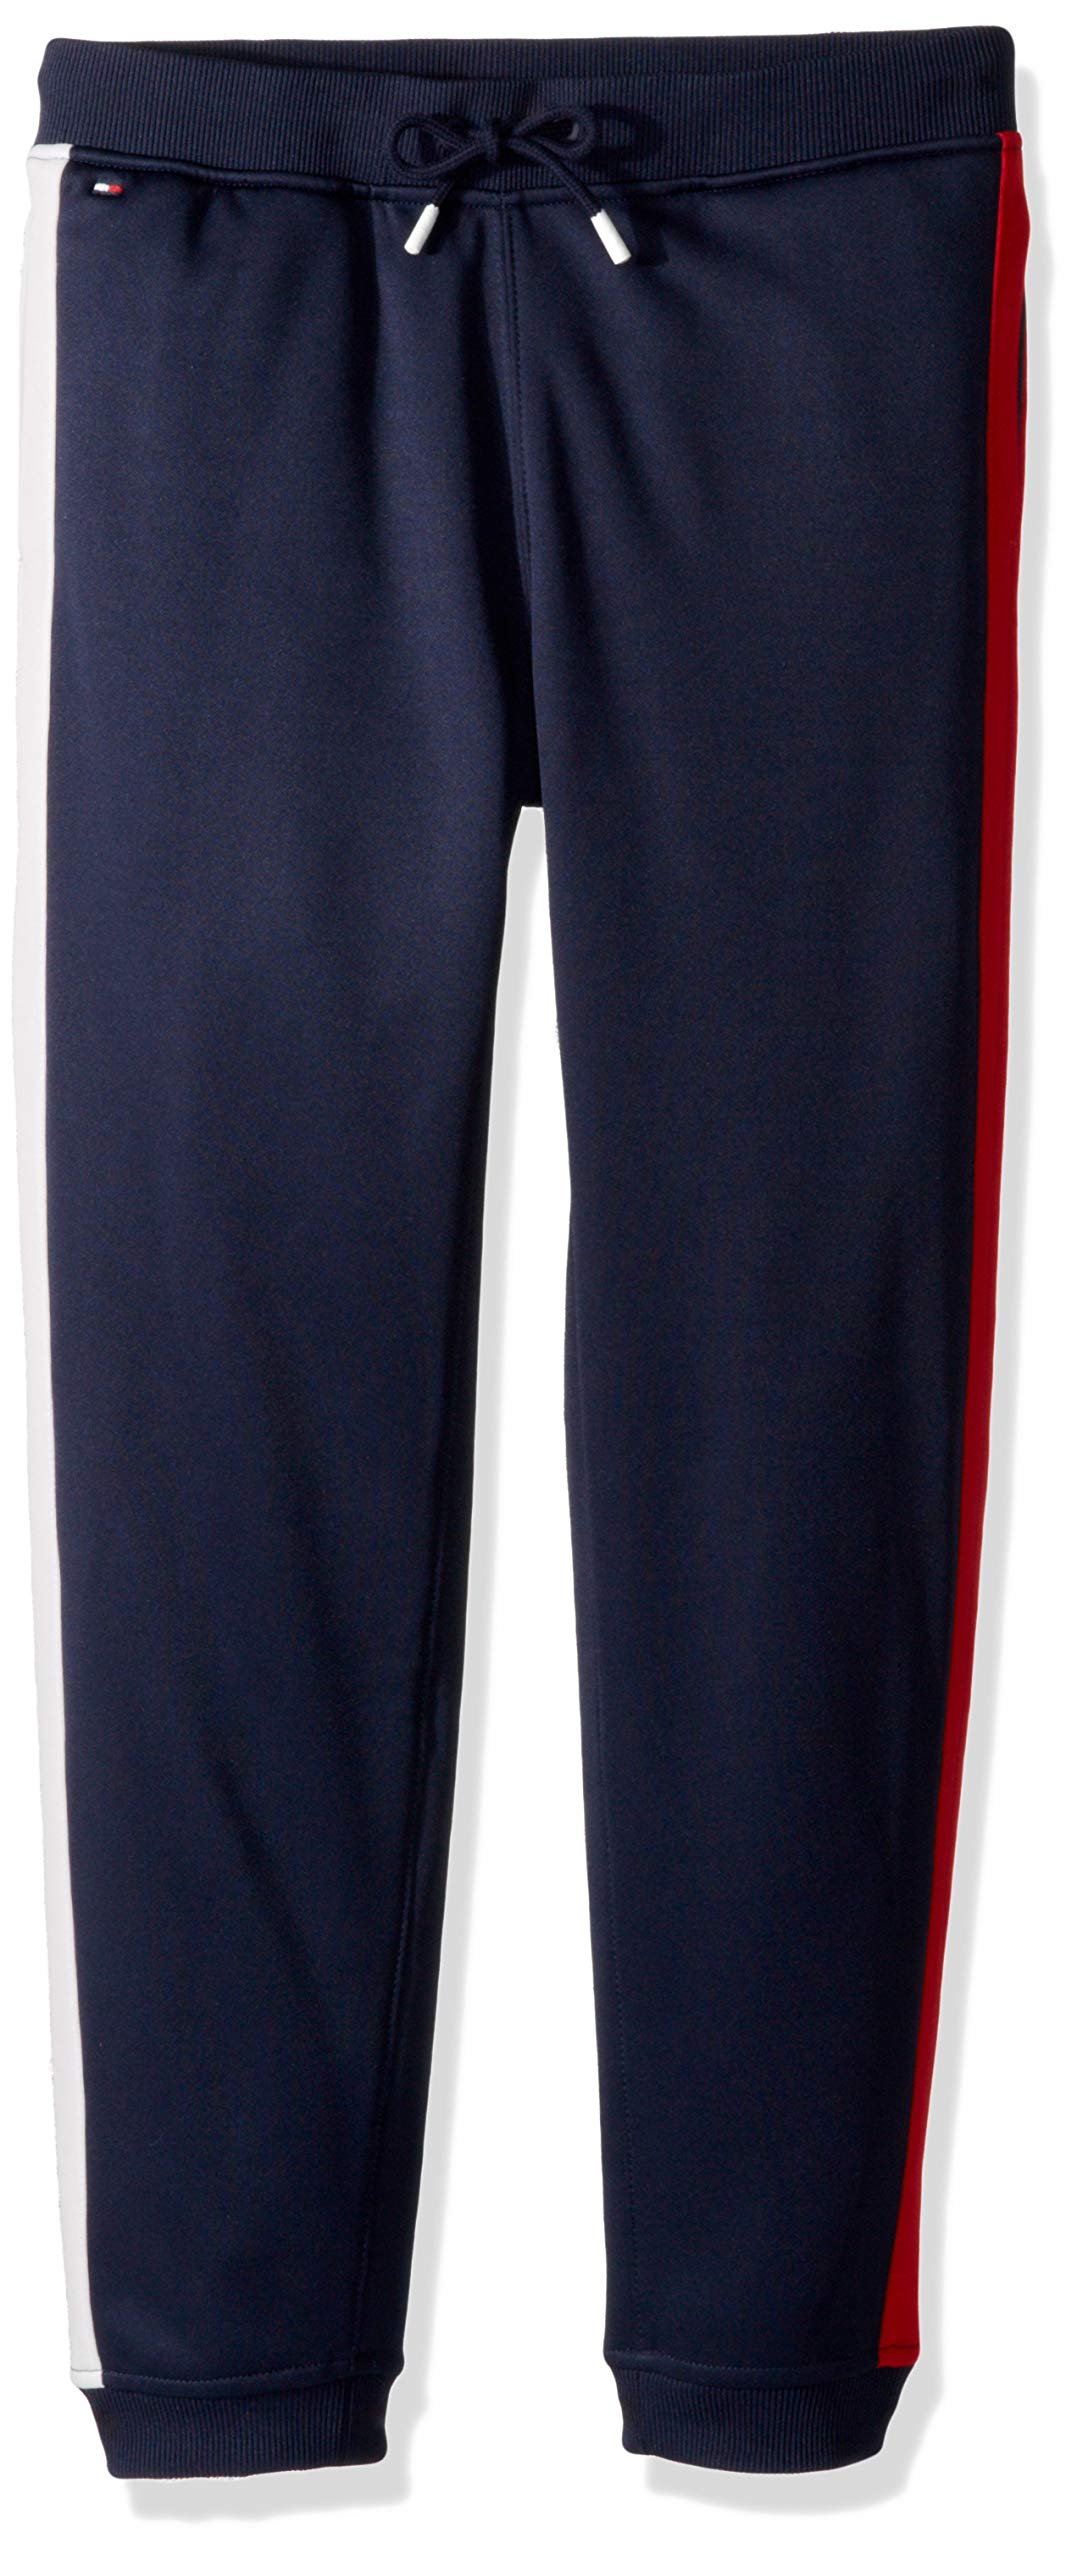 Tommy Hilfiger Boys' Adaptive Track Pants with Elastic Waist, peacoat X-Small